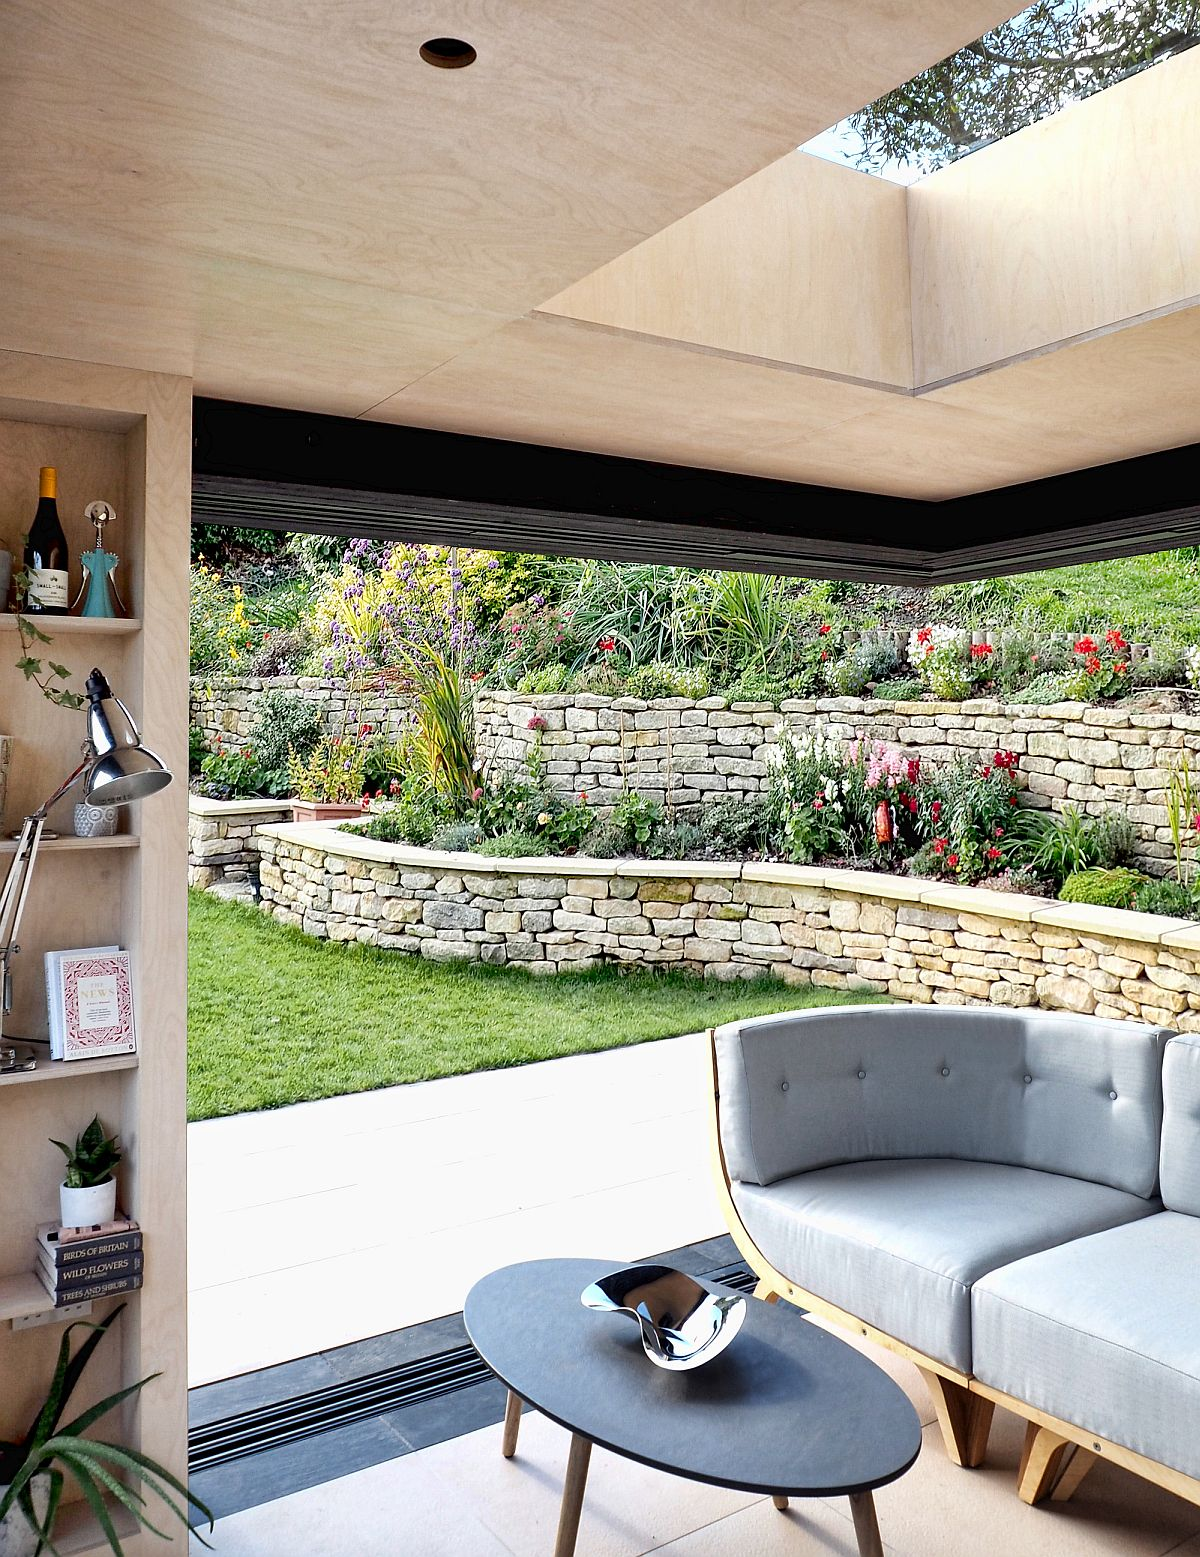 Garden adds to the style of the reading room while extending the interior outdoors